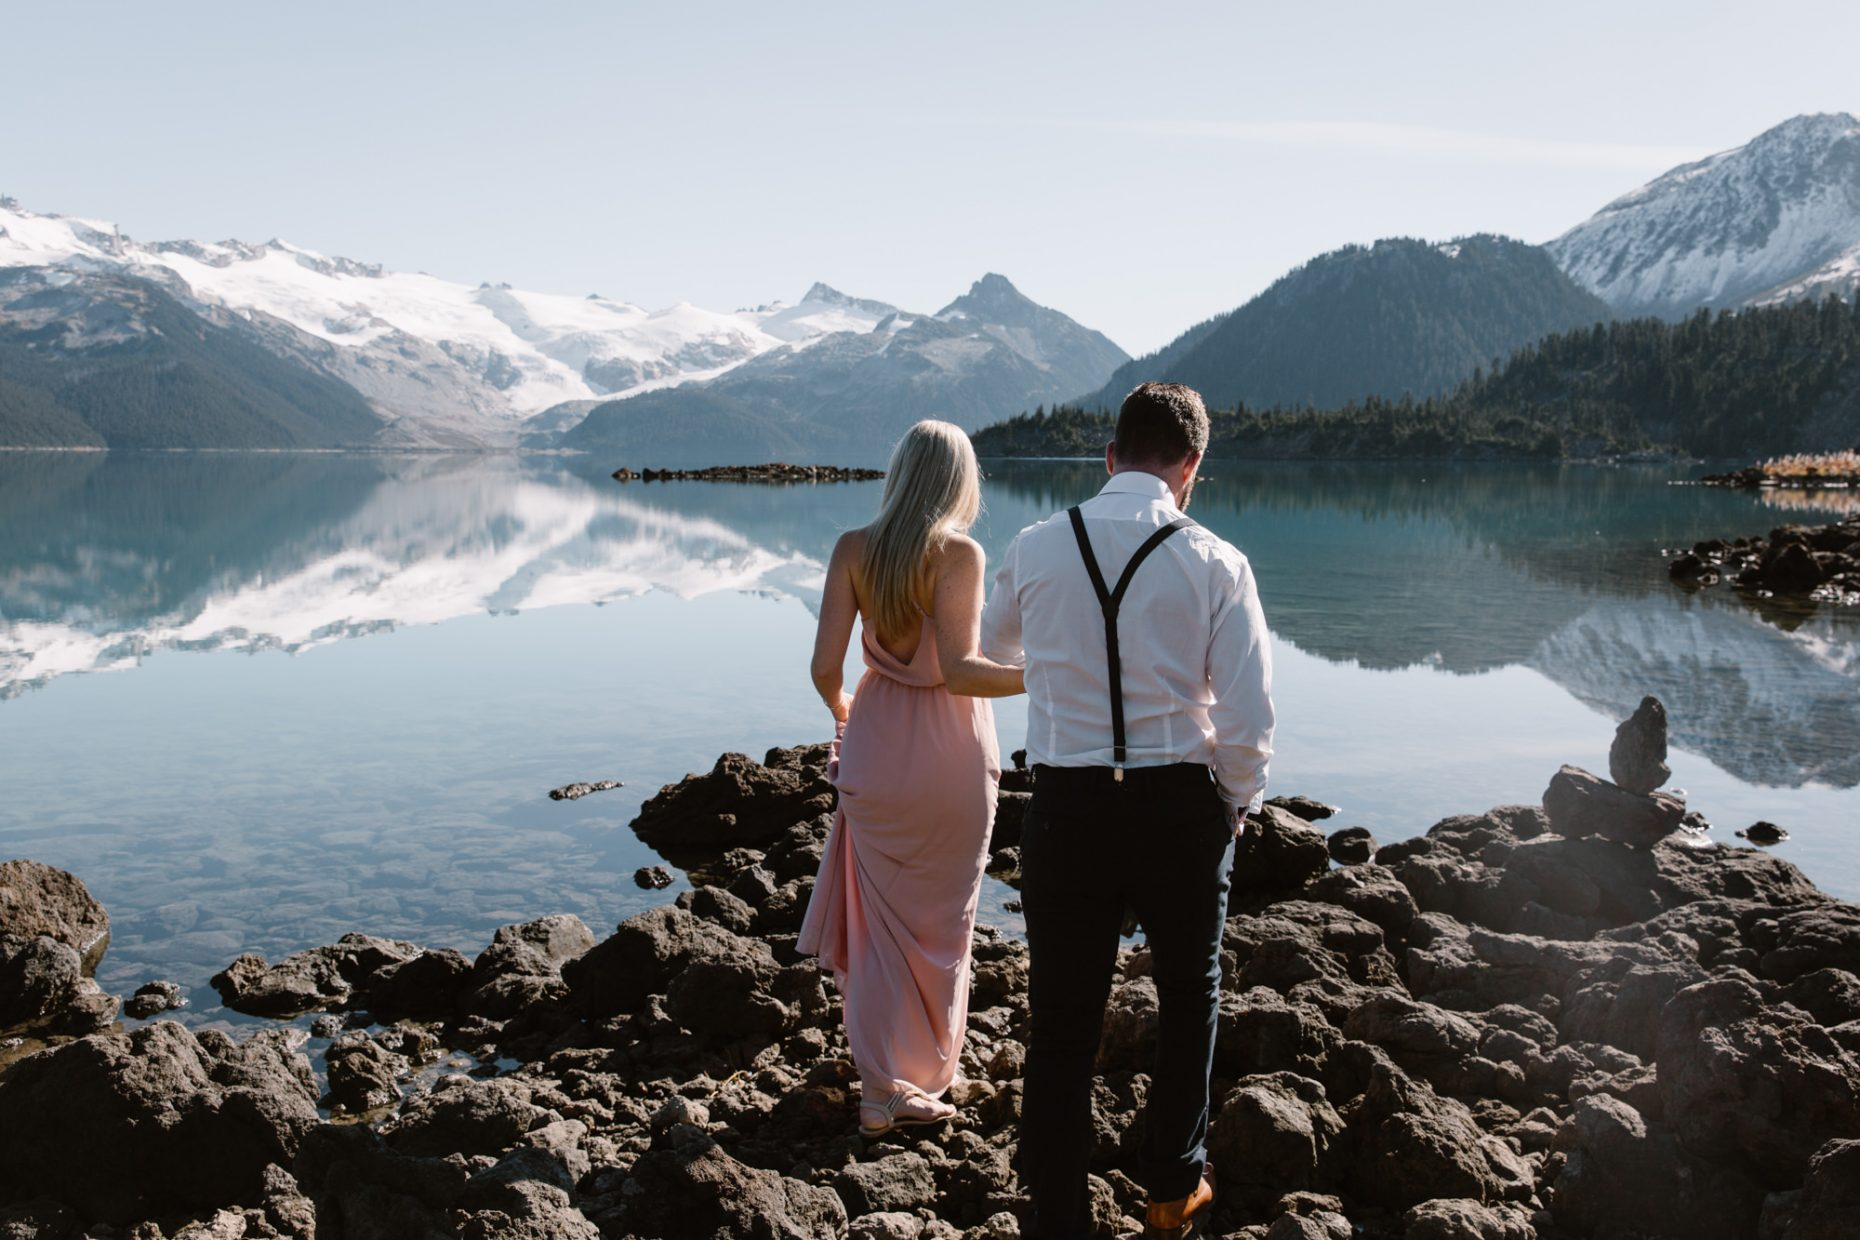 engagement photo on Garibaldi lake, couple walking towards the mountains